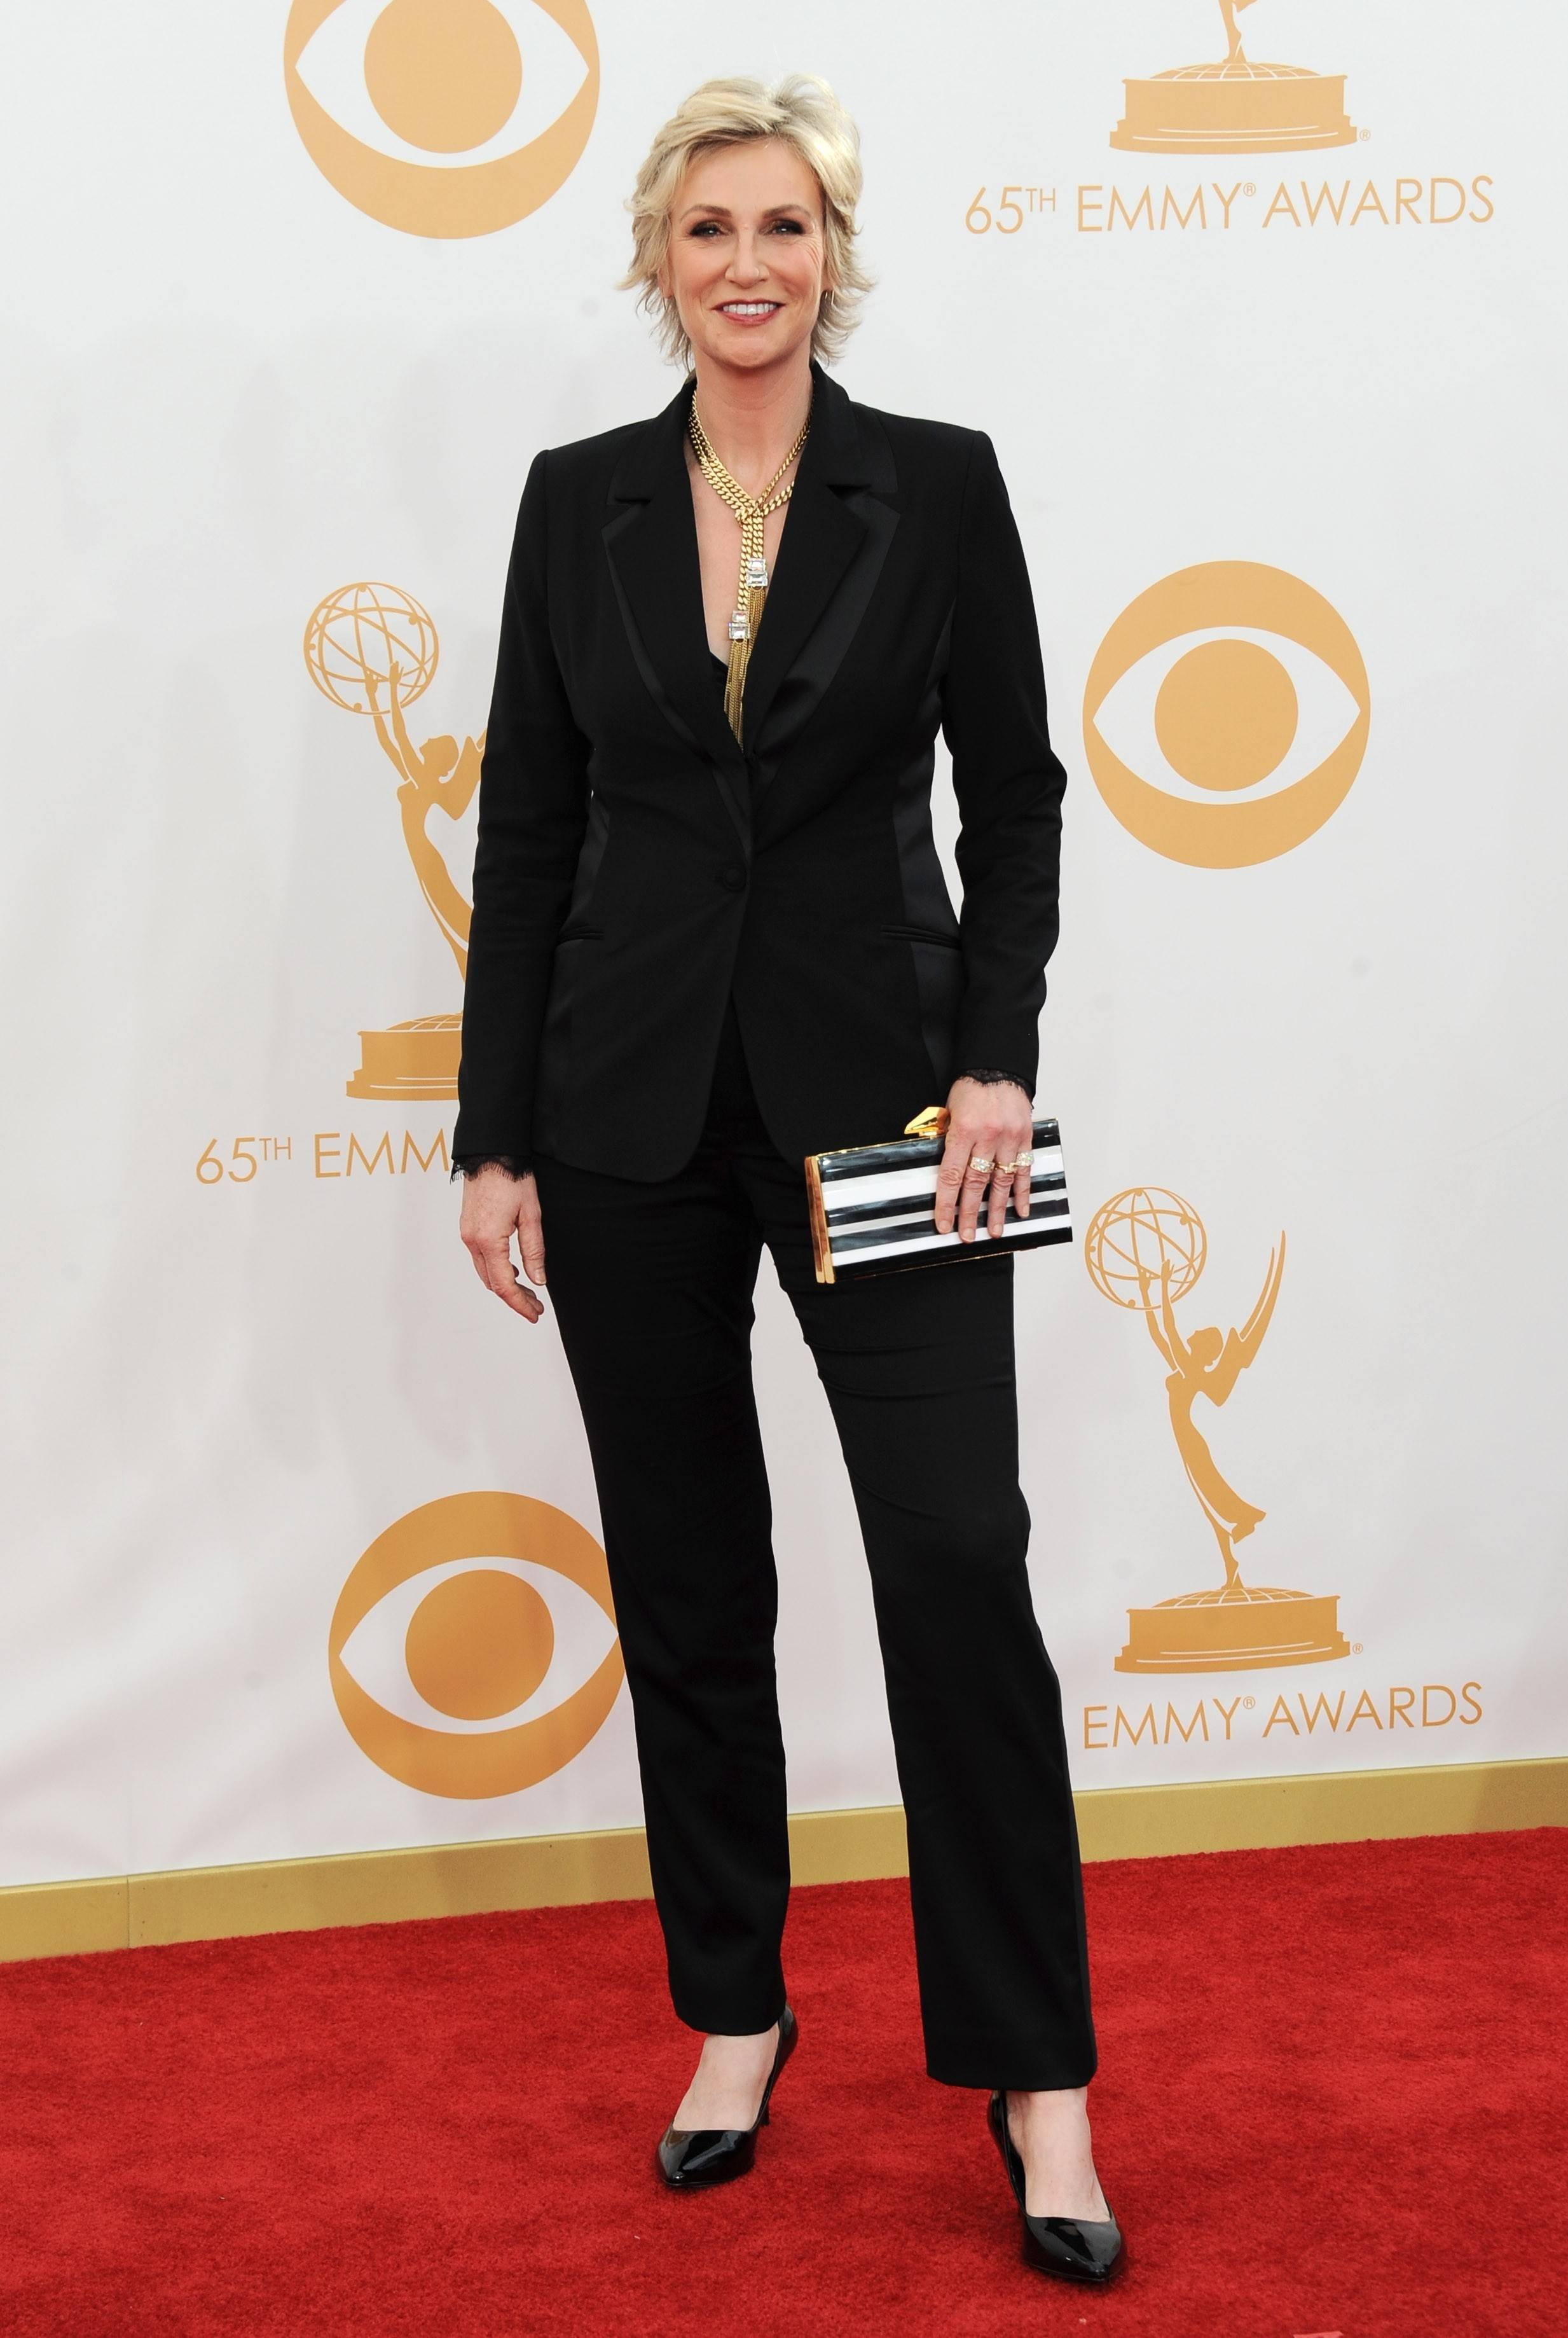 Jane Lynch arrives at the 65th Primetime Emmy Awards at Nokia Theatre on Sunday Sept. 22, 2013, in Los Angeles. (Photo by Jordan Strauss/Invision/AP)